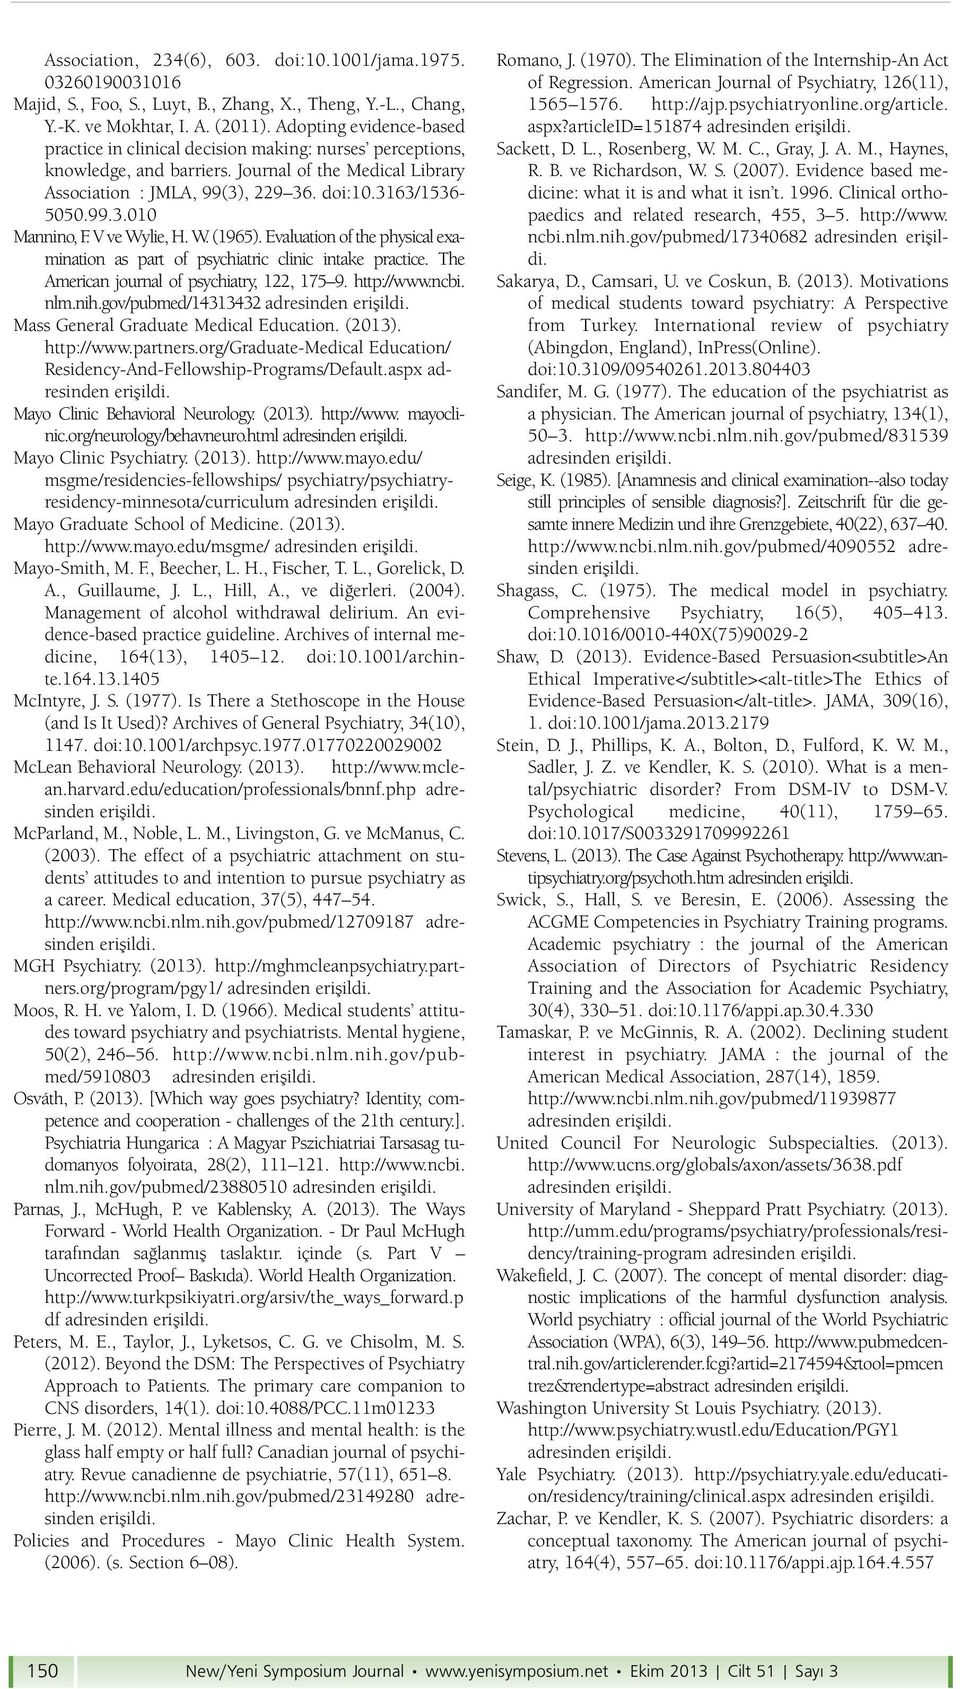 V ve Wylie, H. W. (1965). Evaluation of the physical examination as part of psychiatric clinic intake practice. The American journal of psychiatry, 122, 175 9. http://www.ncbi. nlm.nih.